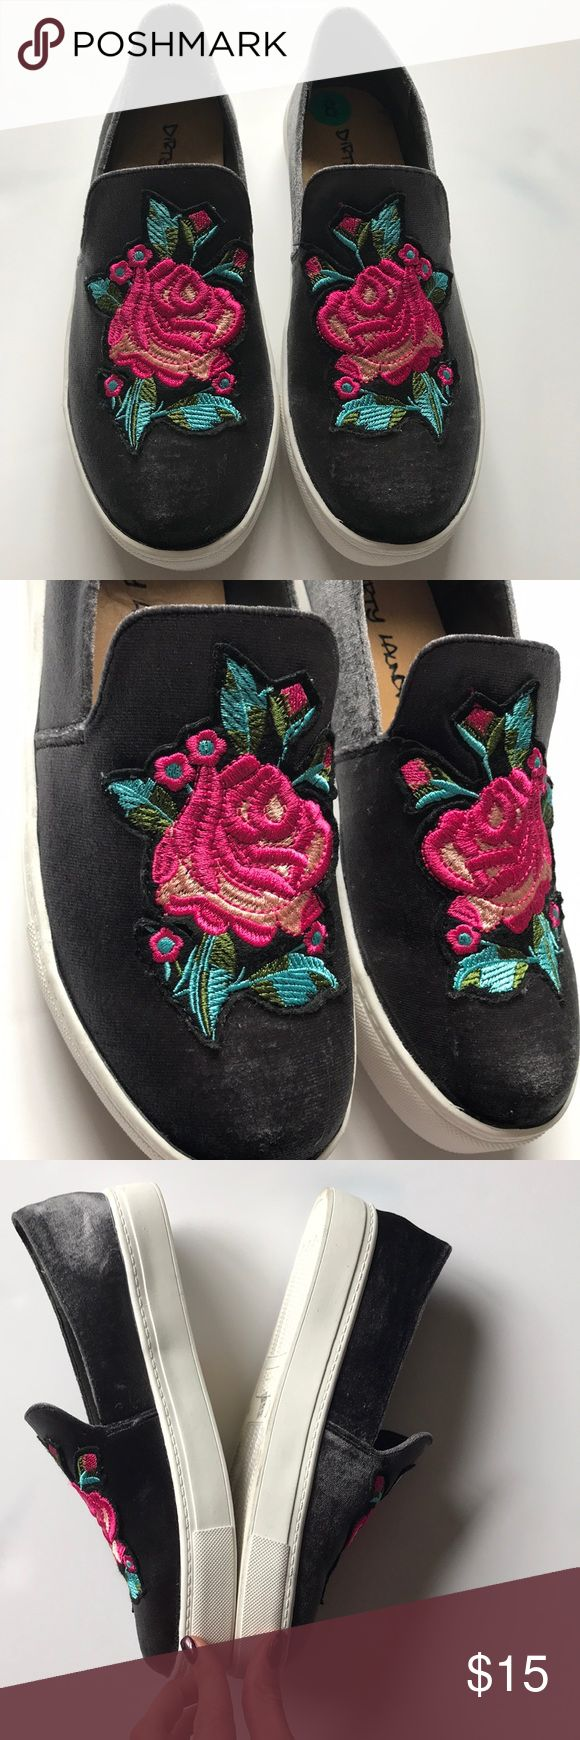 NWOB Dirty Laundry slip on embroidery sneakers 8 New without the box Dirty Laundry slip on sneakers size 8  Gorgeous velvet detail with embellished front  Smoke free pet friendly home  Thank you for looking! Dirty Laundry Shoes Sneakers